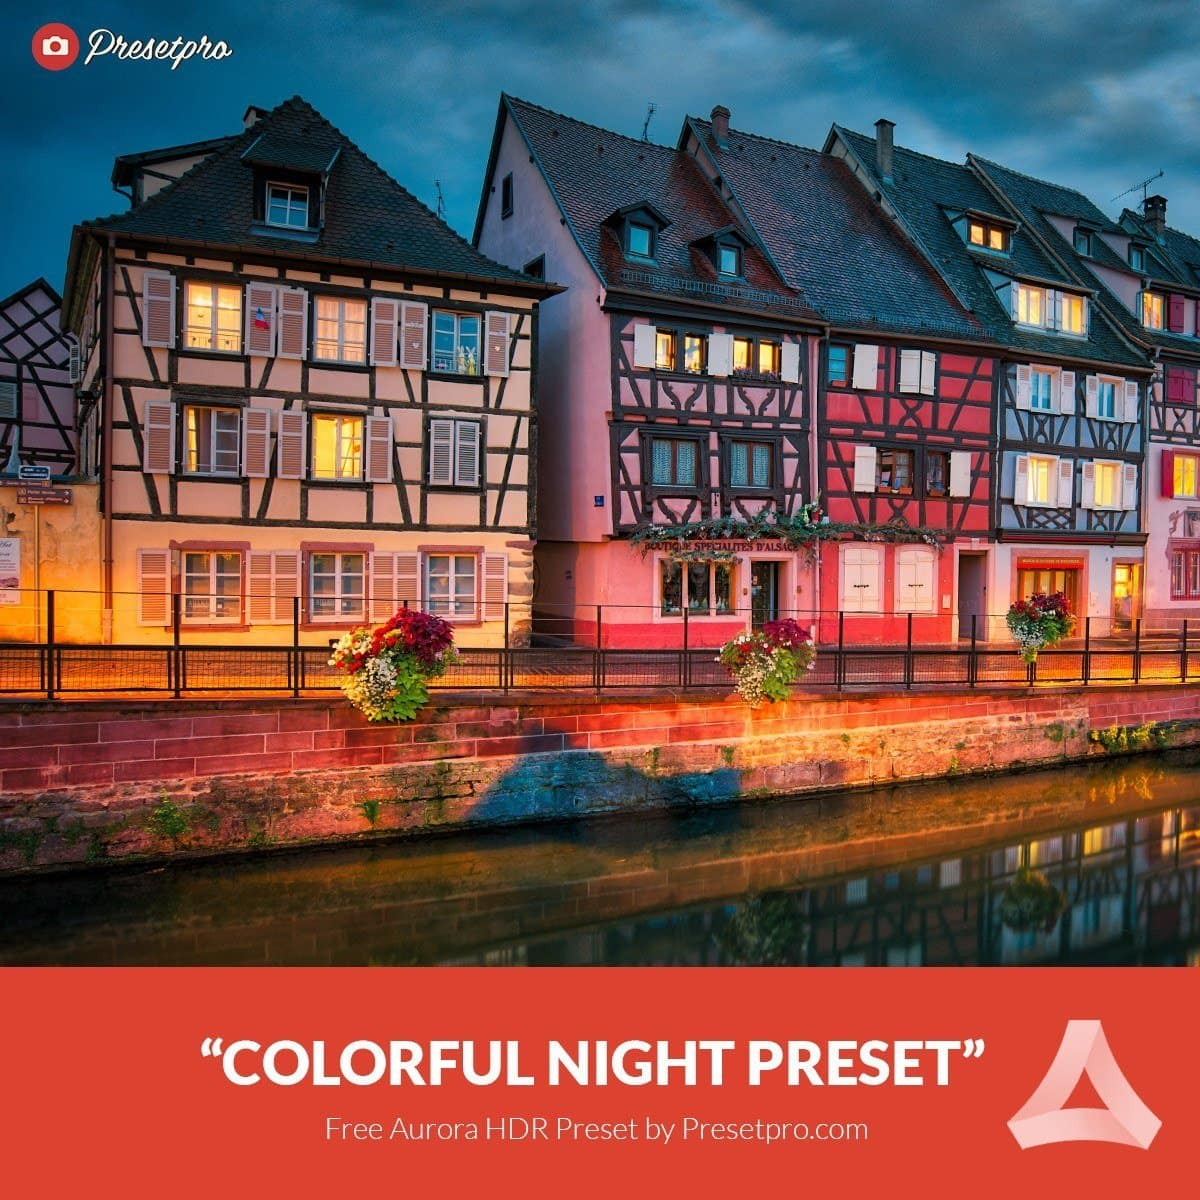 Free-Aurora-HDR-Preset-Colorful-Night-Presetpro